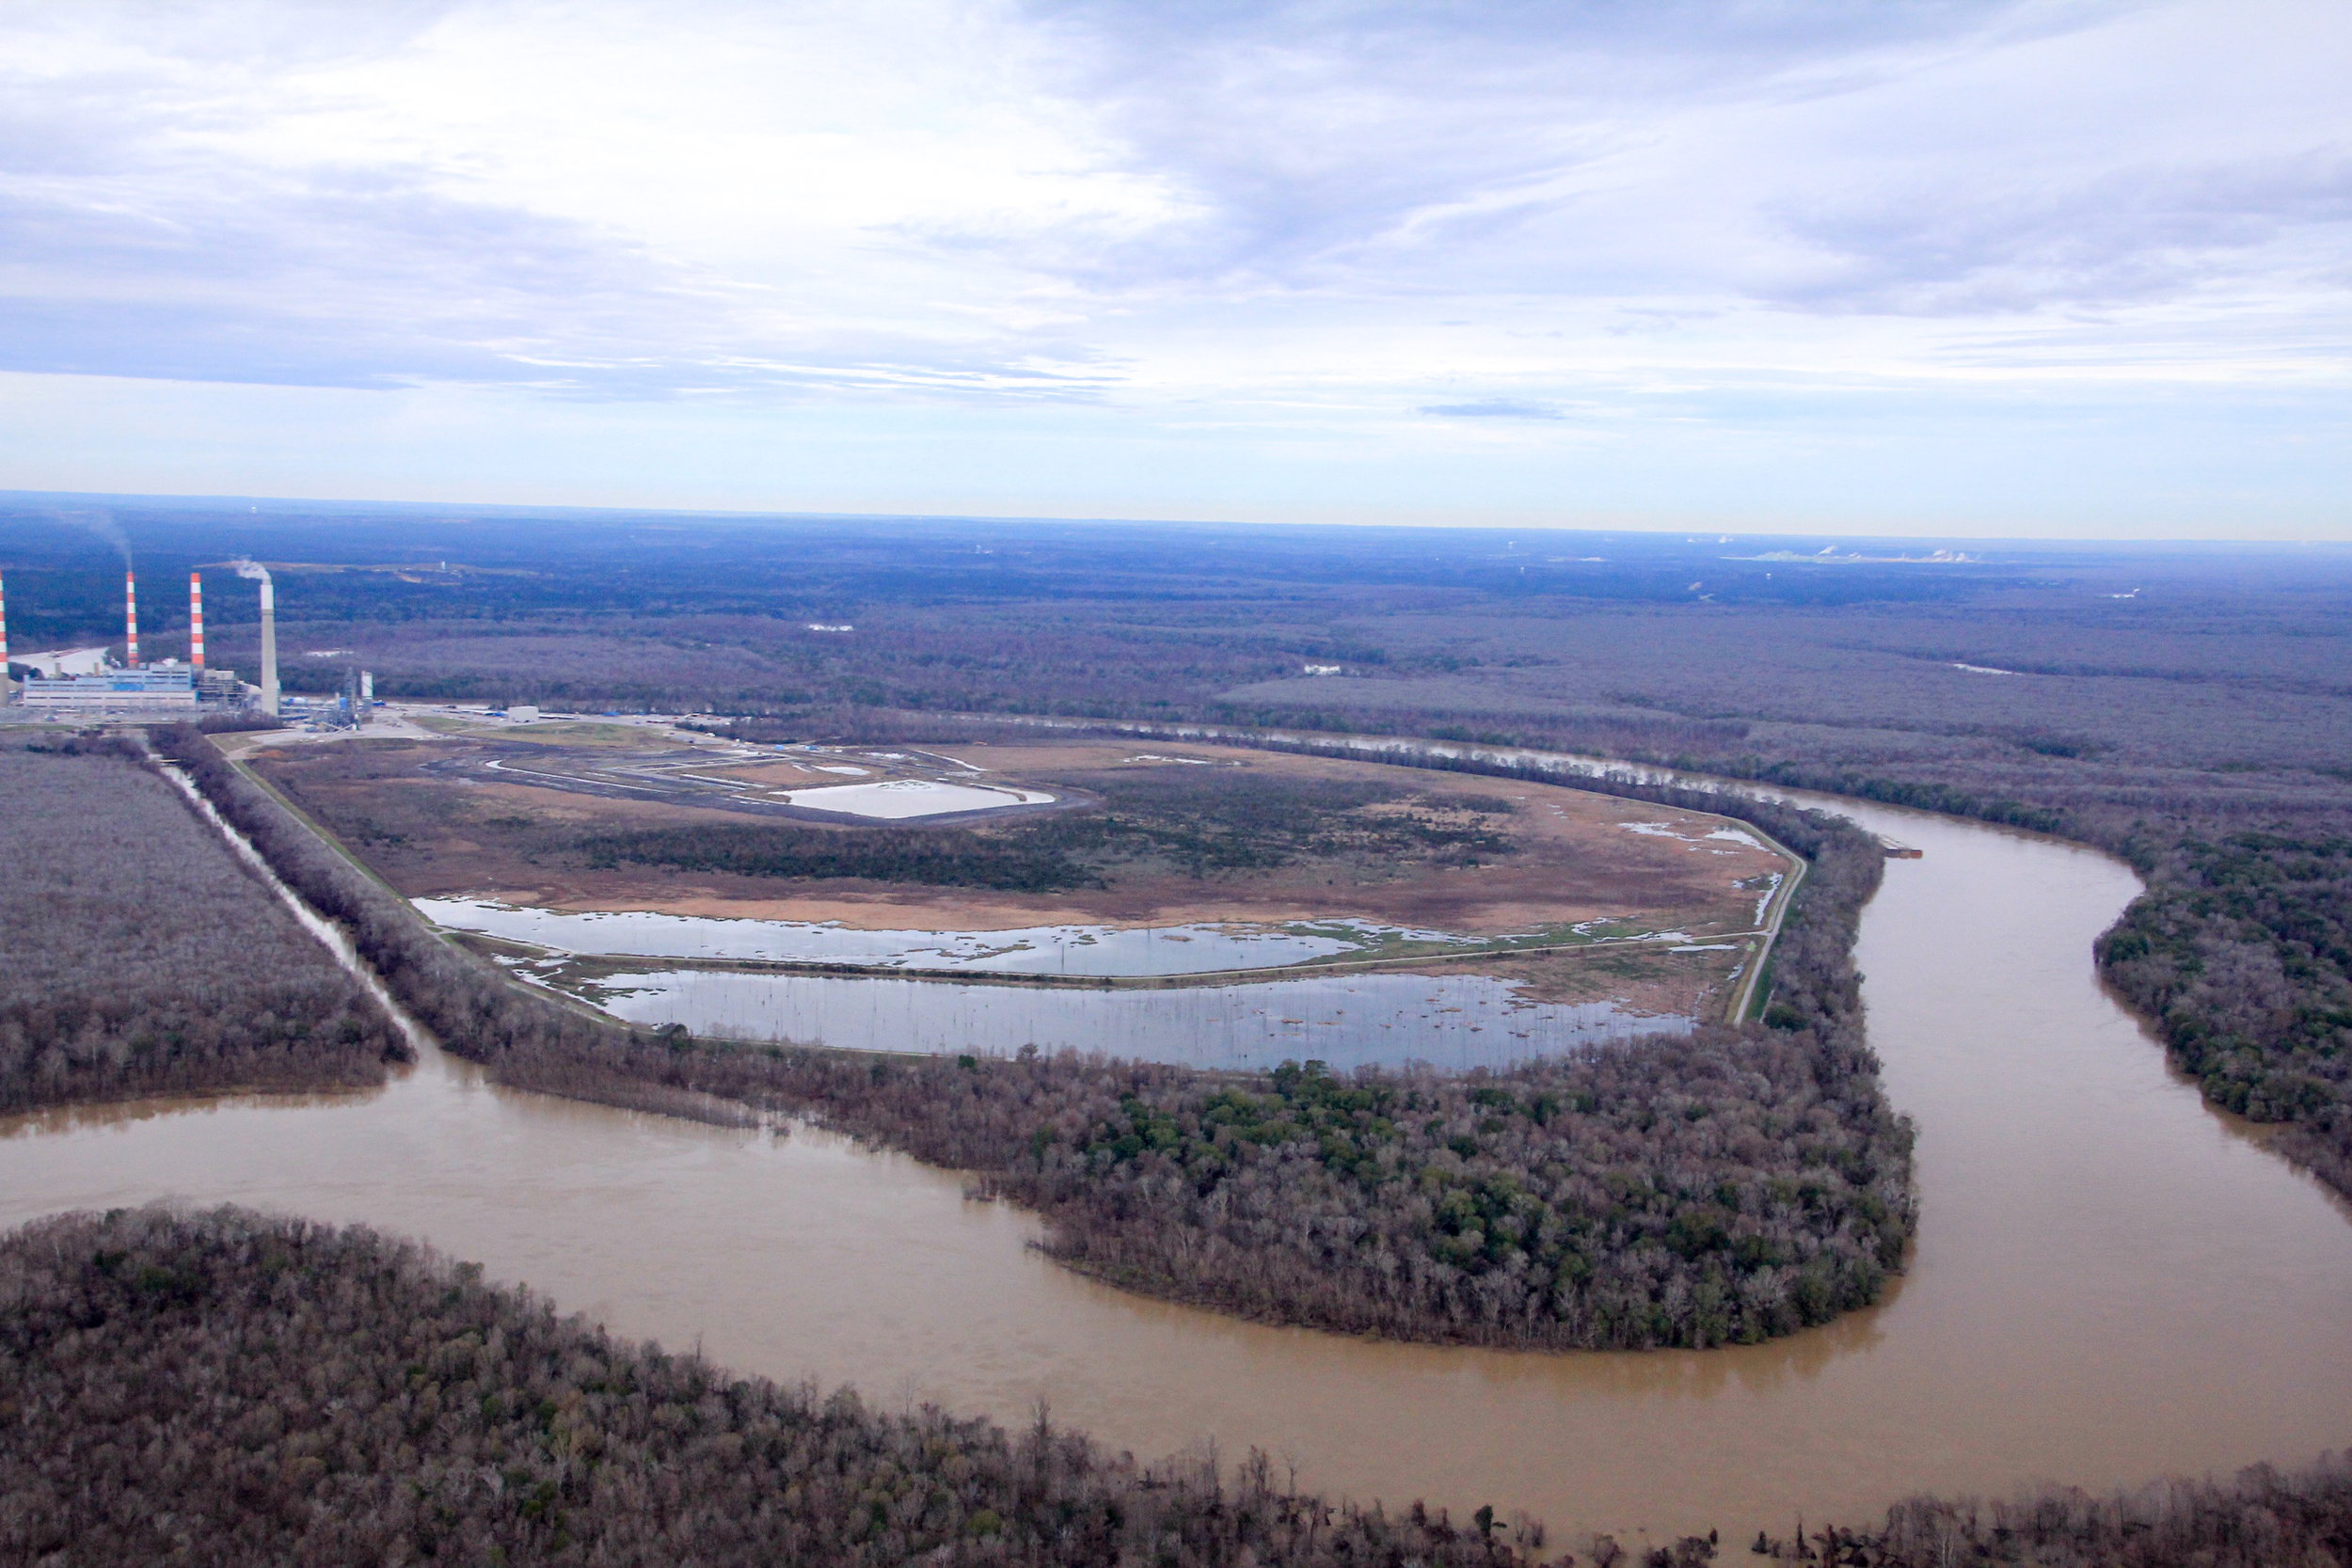 Flooding in January 2016 begins to cover the area near Plant Barry's coal ash pond.